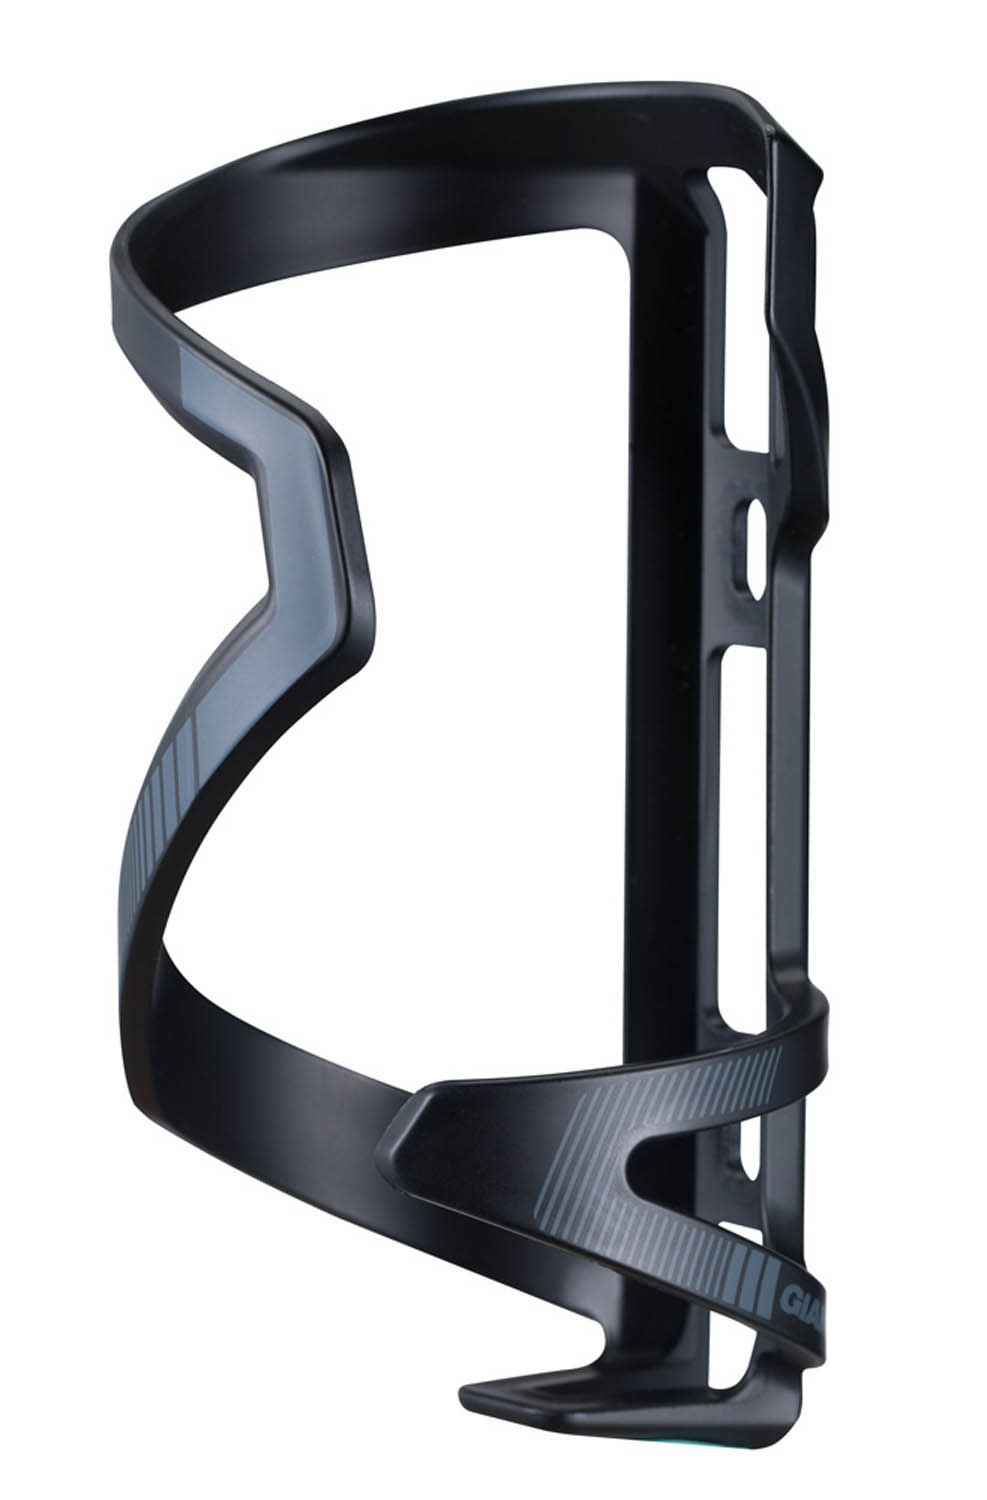 Giant Giant Airway Sidepull Water Bottle Cage